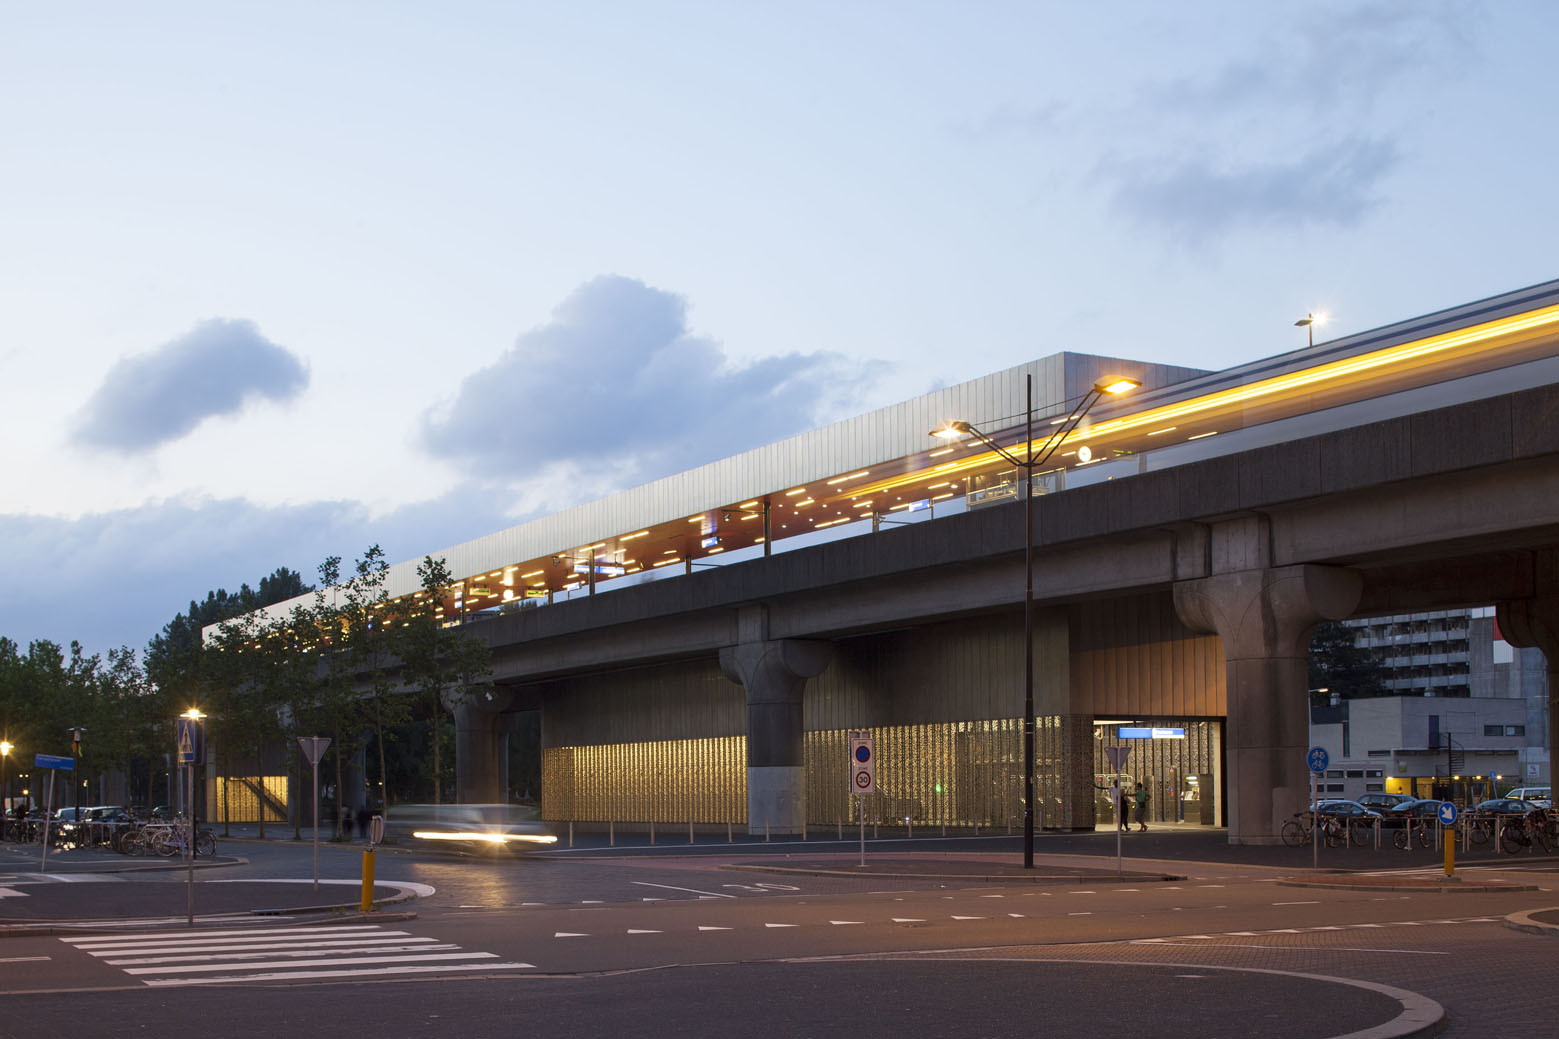 Amsterdam Metro Station / Maccreanor Lavington Architects, Courtesy of Maccreanor Lavington